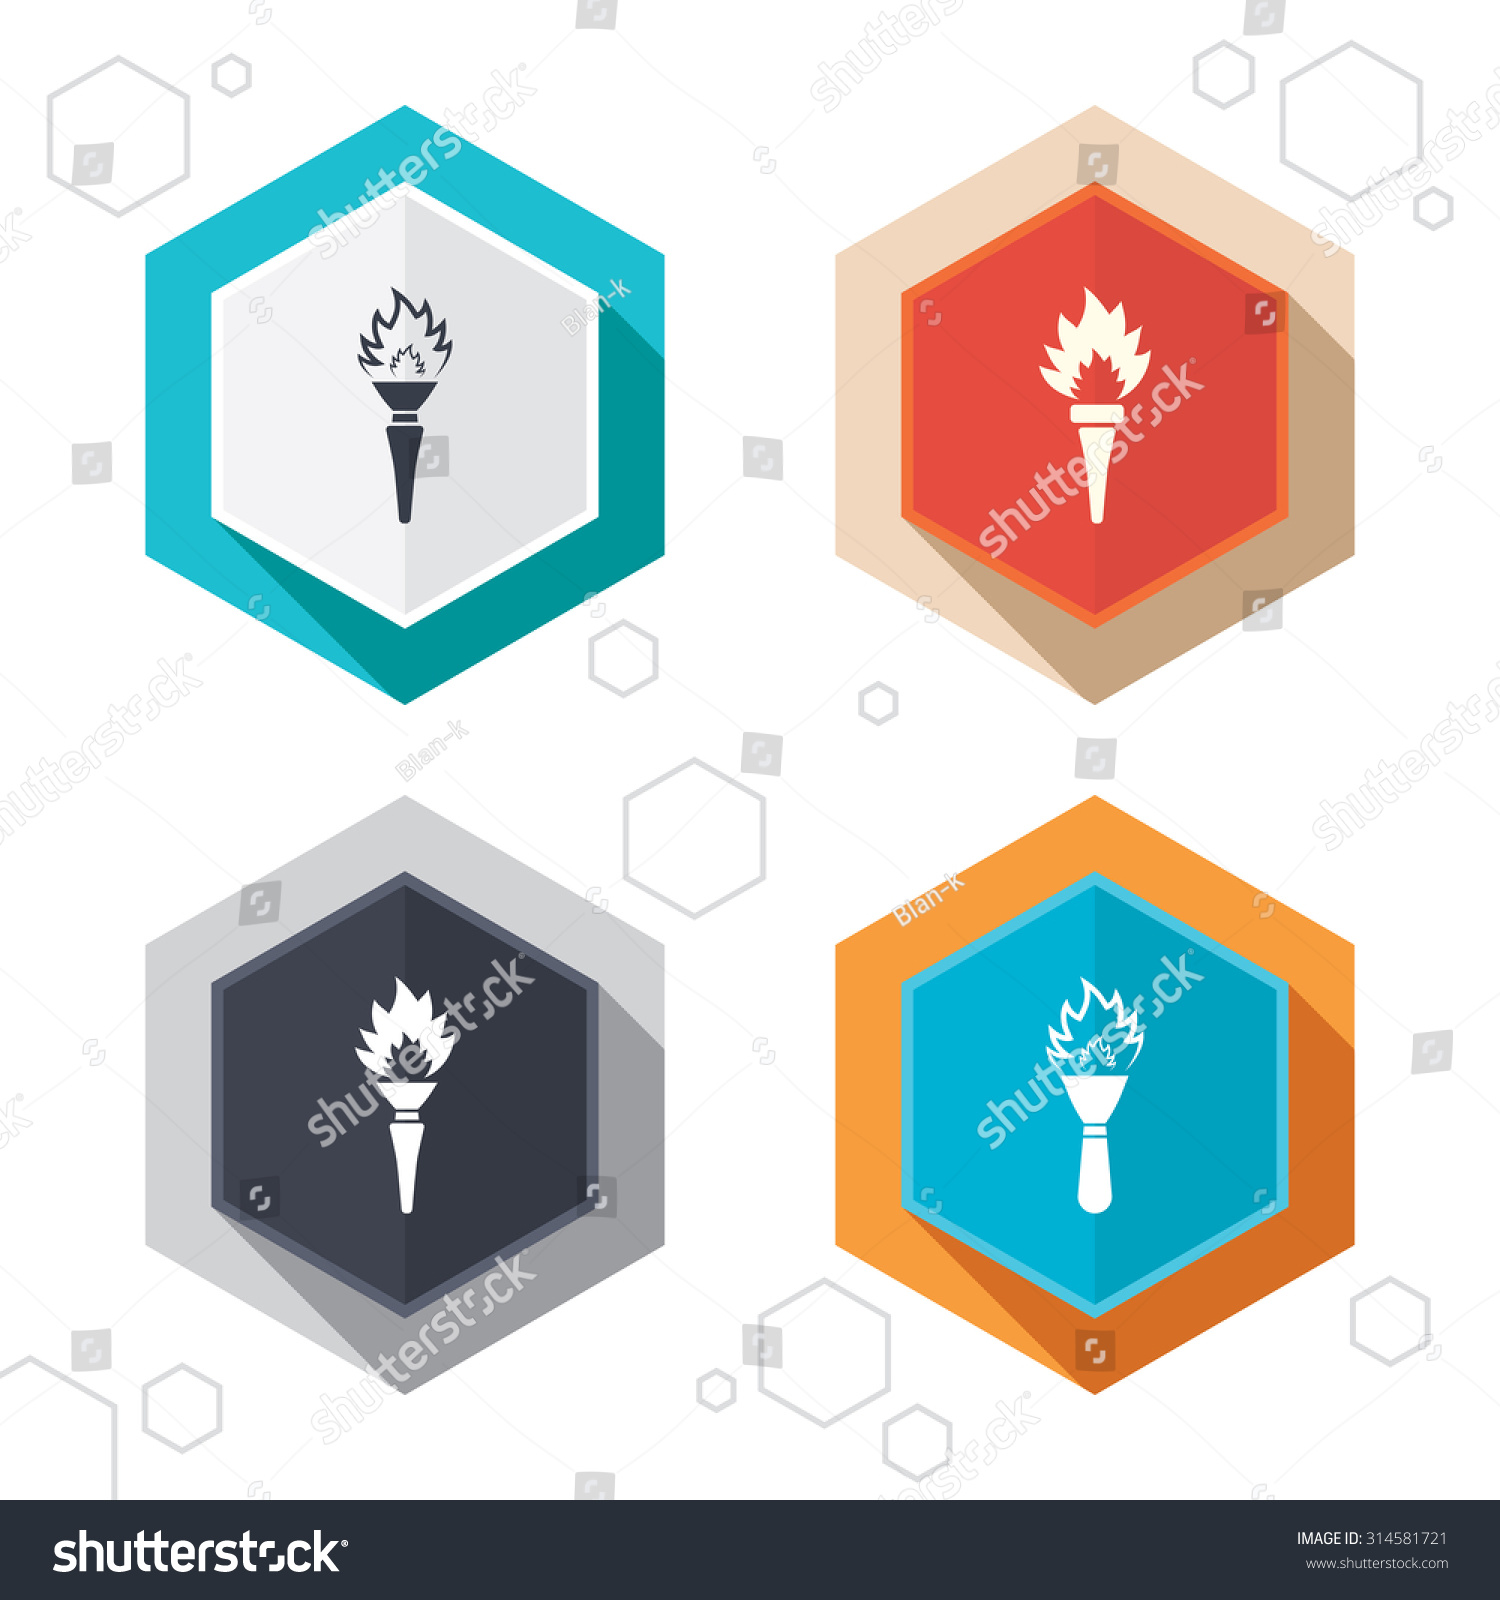 Torch flame icons. Fire flaming symbols. Hand tool which provides light  sc 1 st  Shutterstock & Hexagon Buttons Torch Flame Icons Fire Stock Vector 314581721 ... azcodes.com